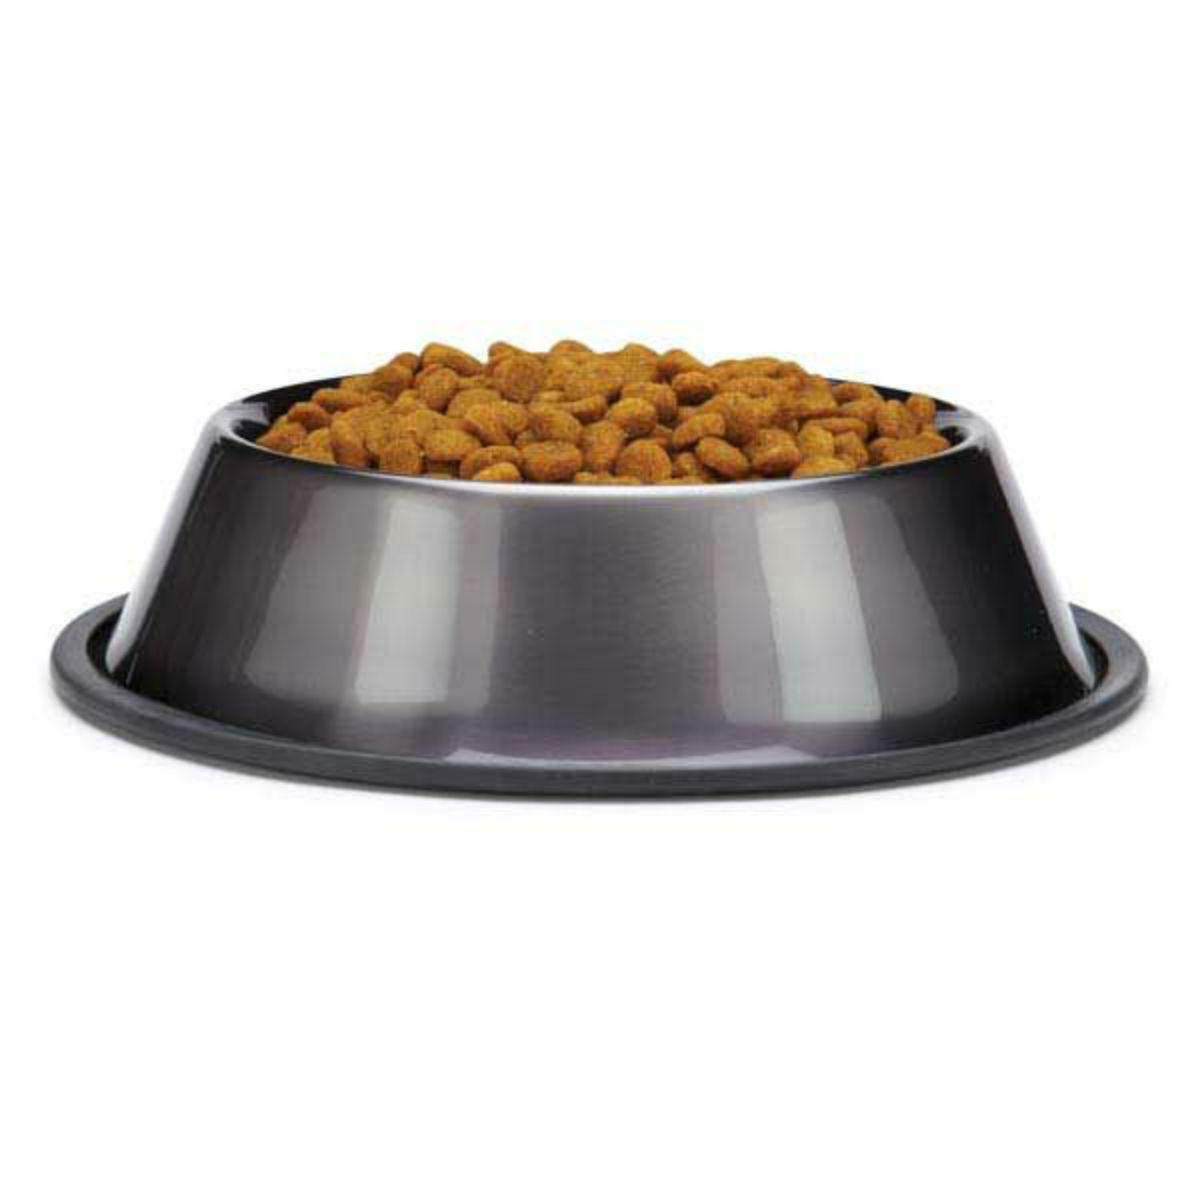 ProSelect DuraGloss Metallic Stainless Steel Dog Bowl - Graphite